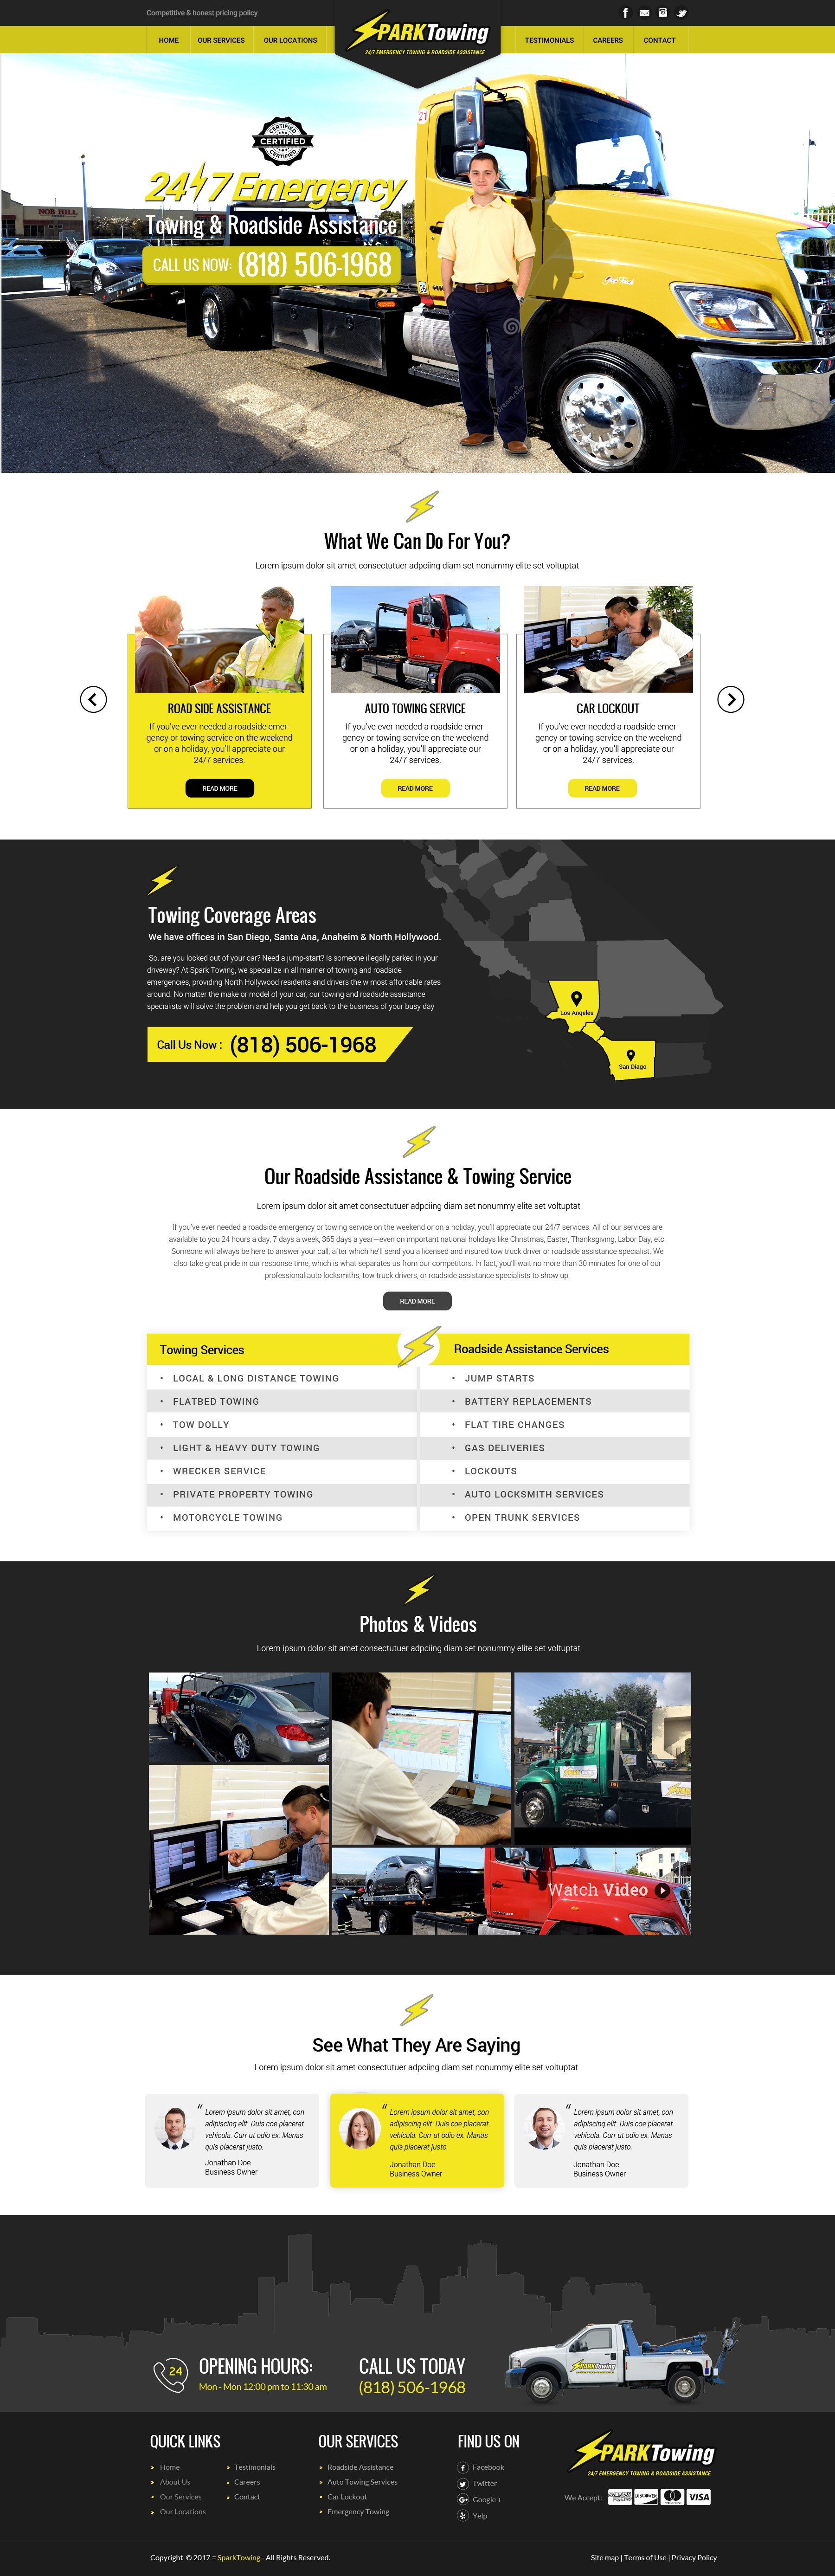 Design a Fresh New Towing Company Website Homepage